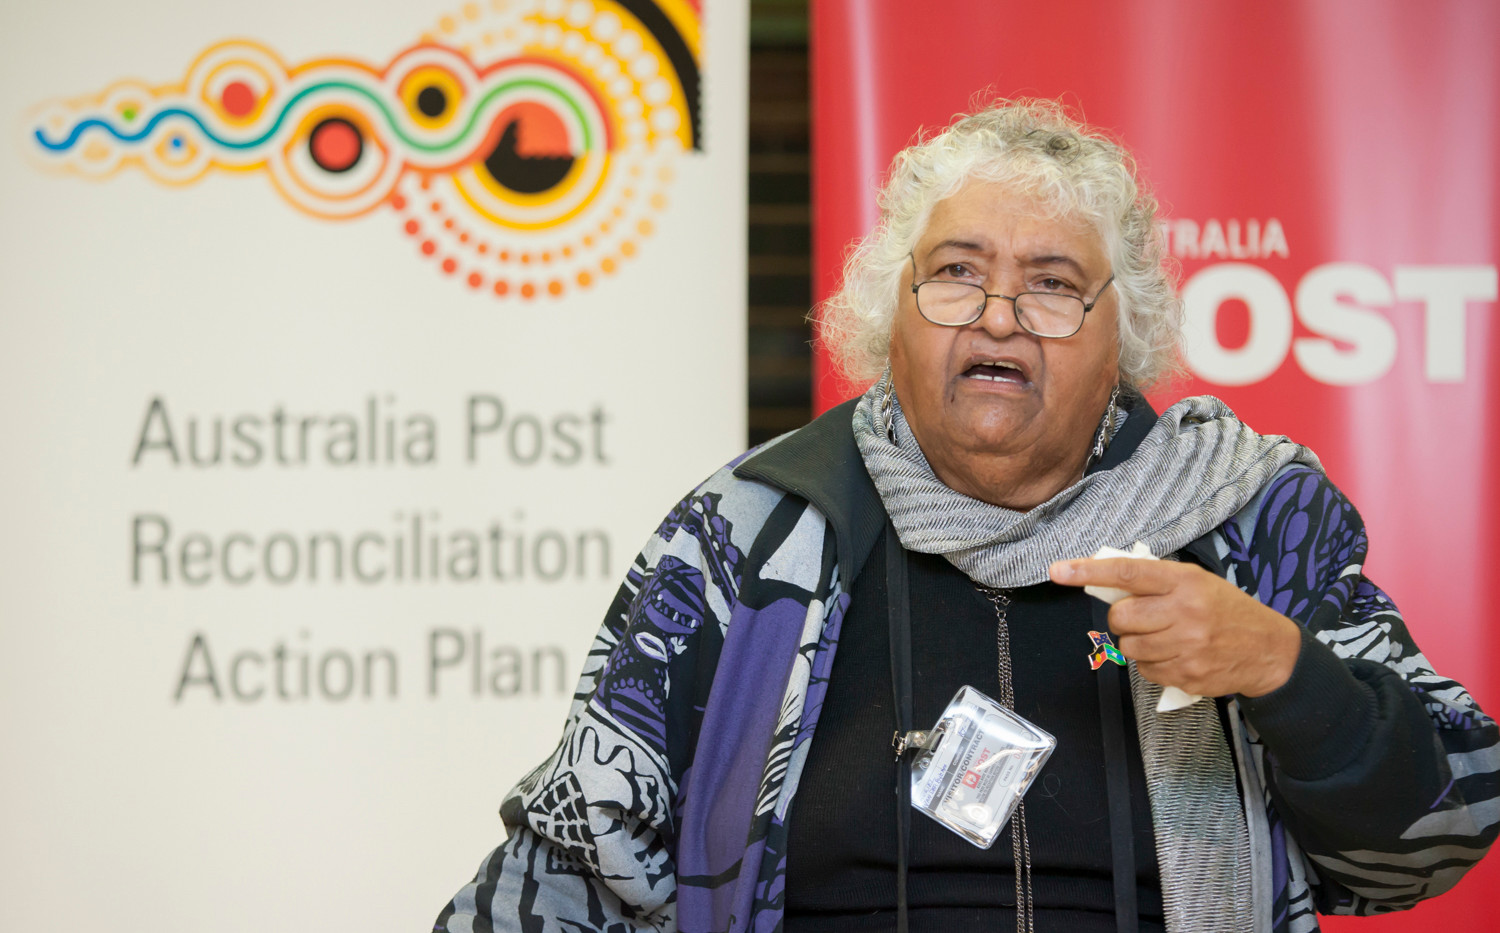 Australia Post Reconciliation Action Plan